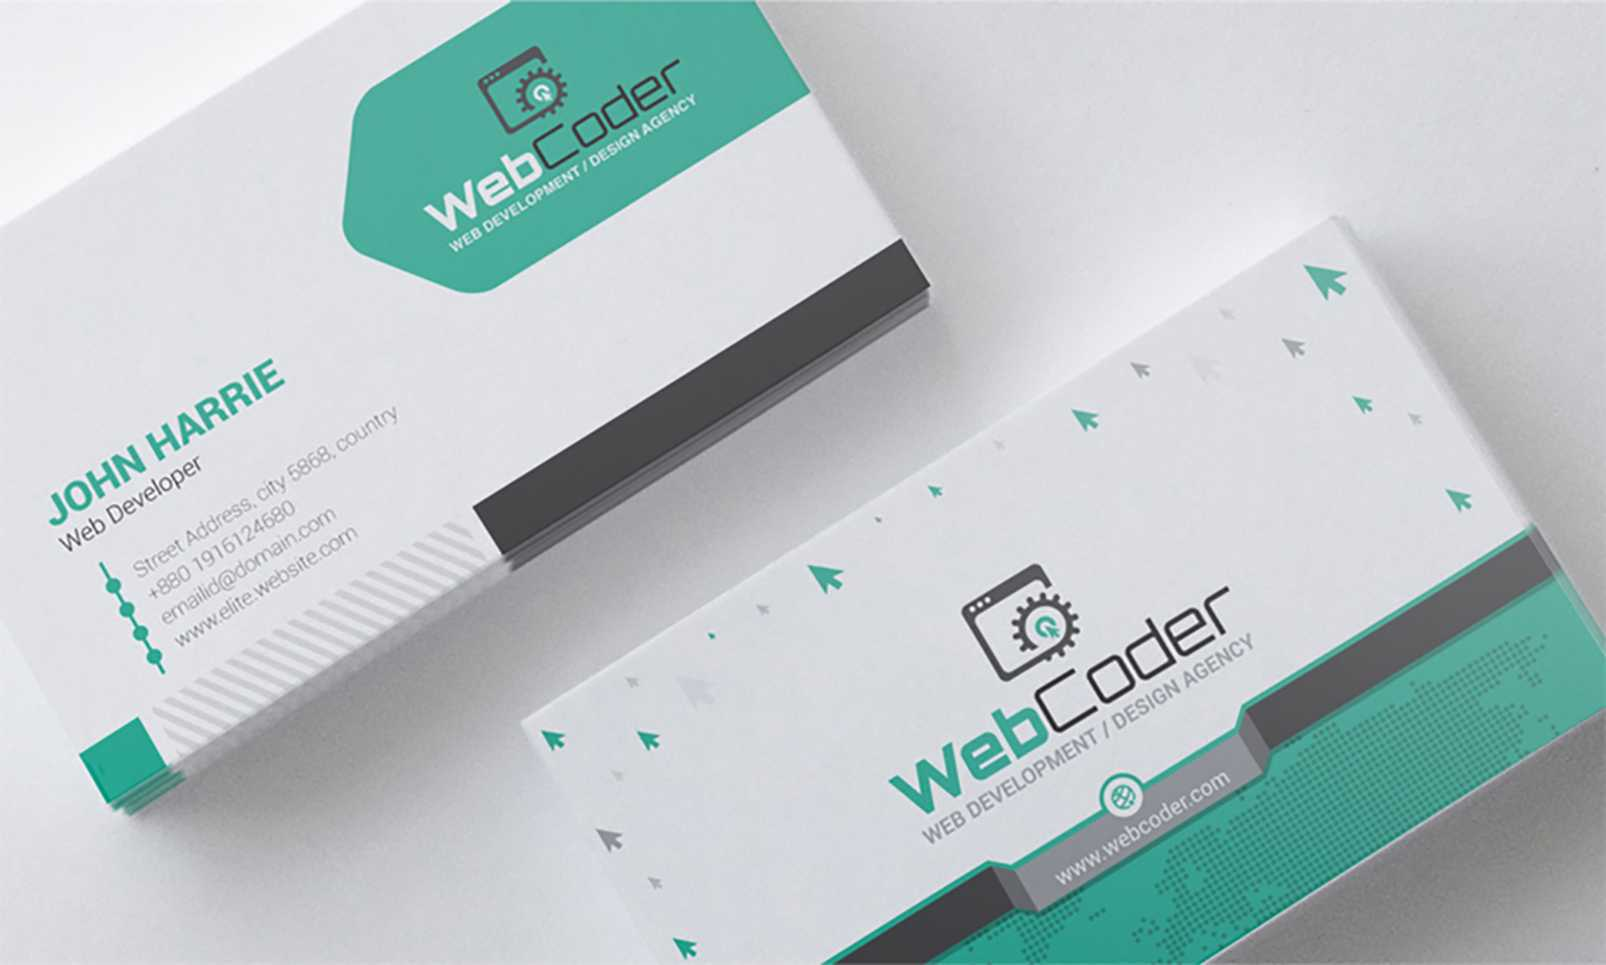 'business Card Design For Web Design And Developer' - Адаптивний Psd Шаблон  №66306 Intended For Web Design Business Cards Templates